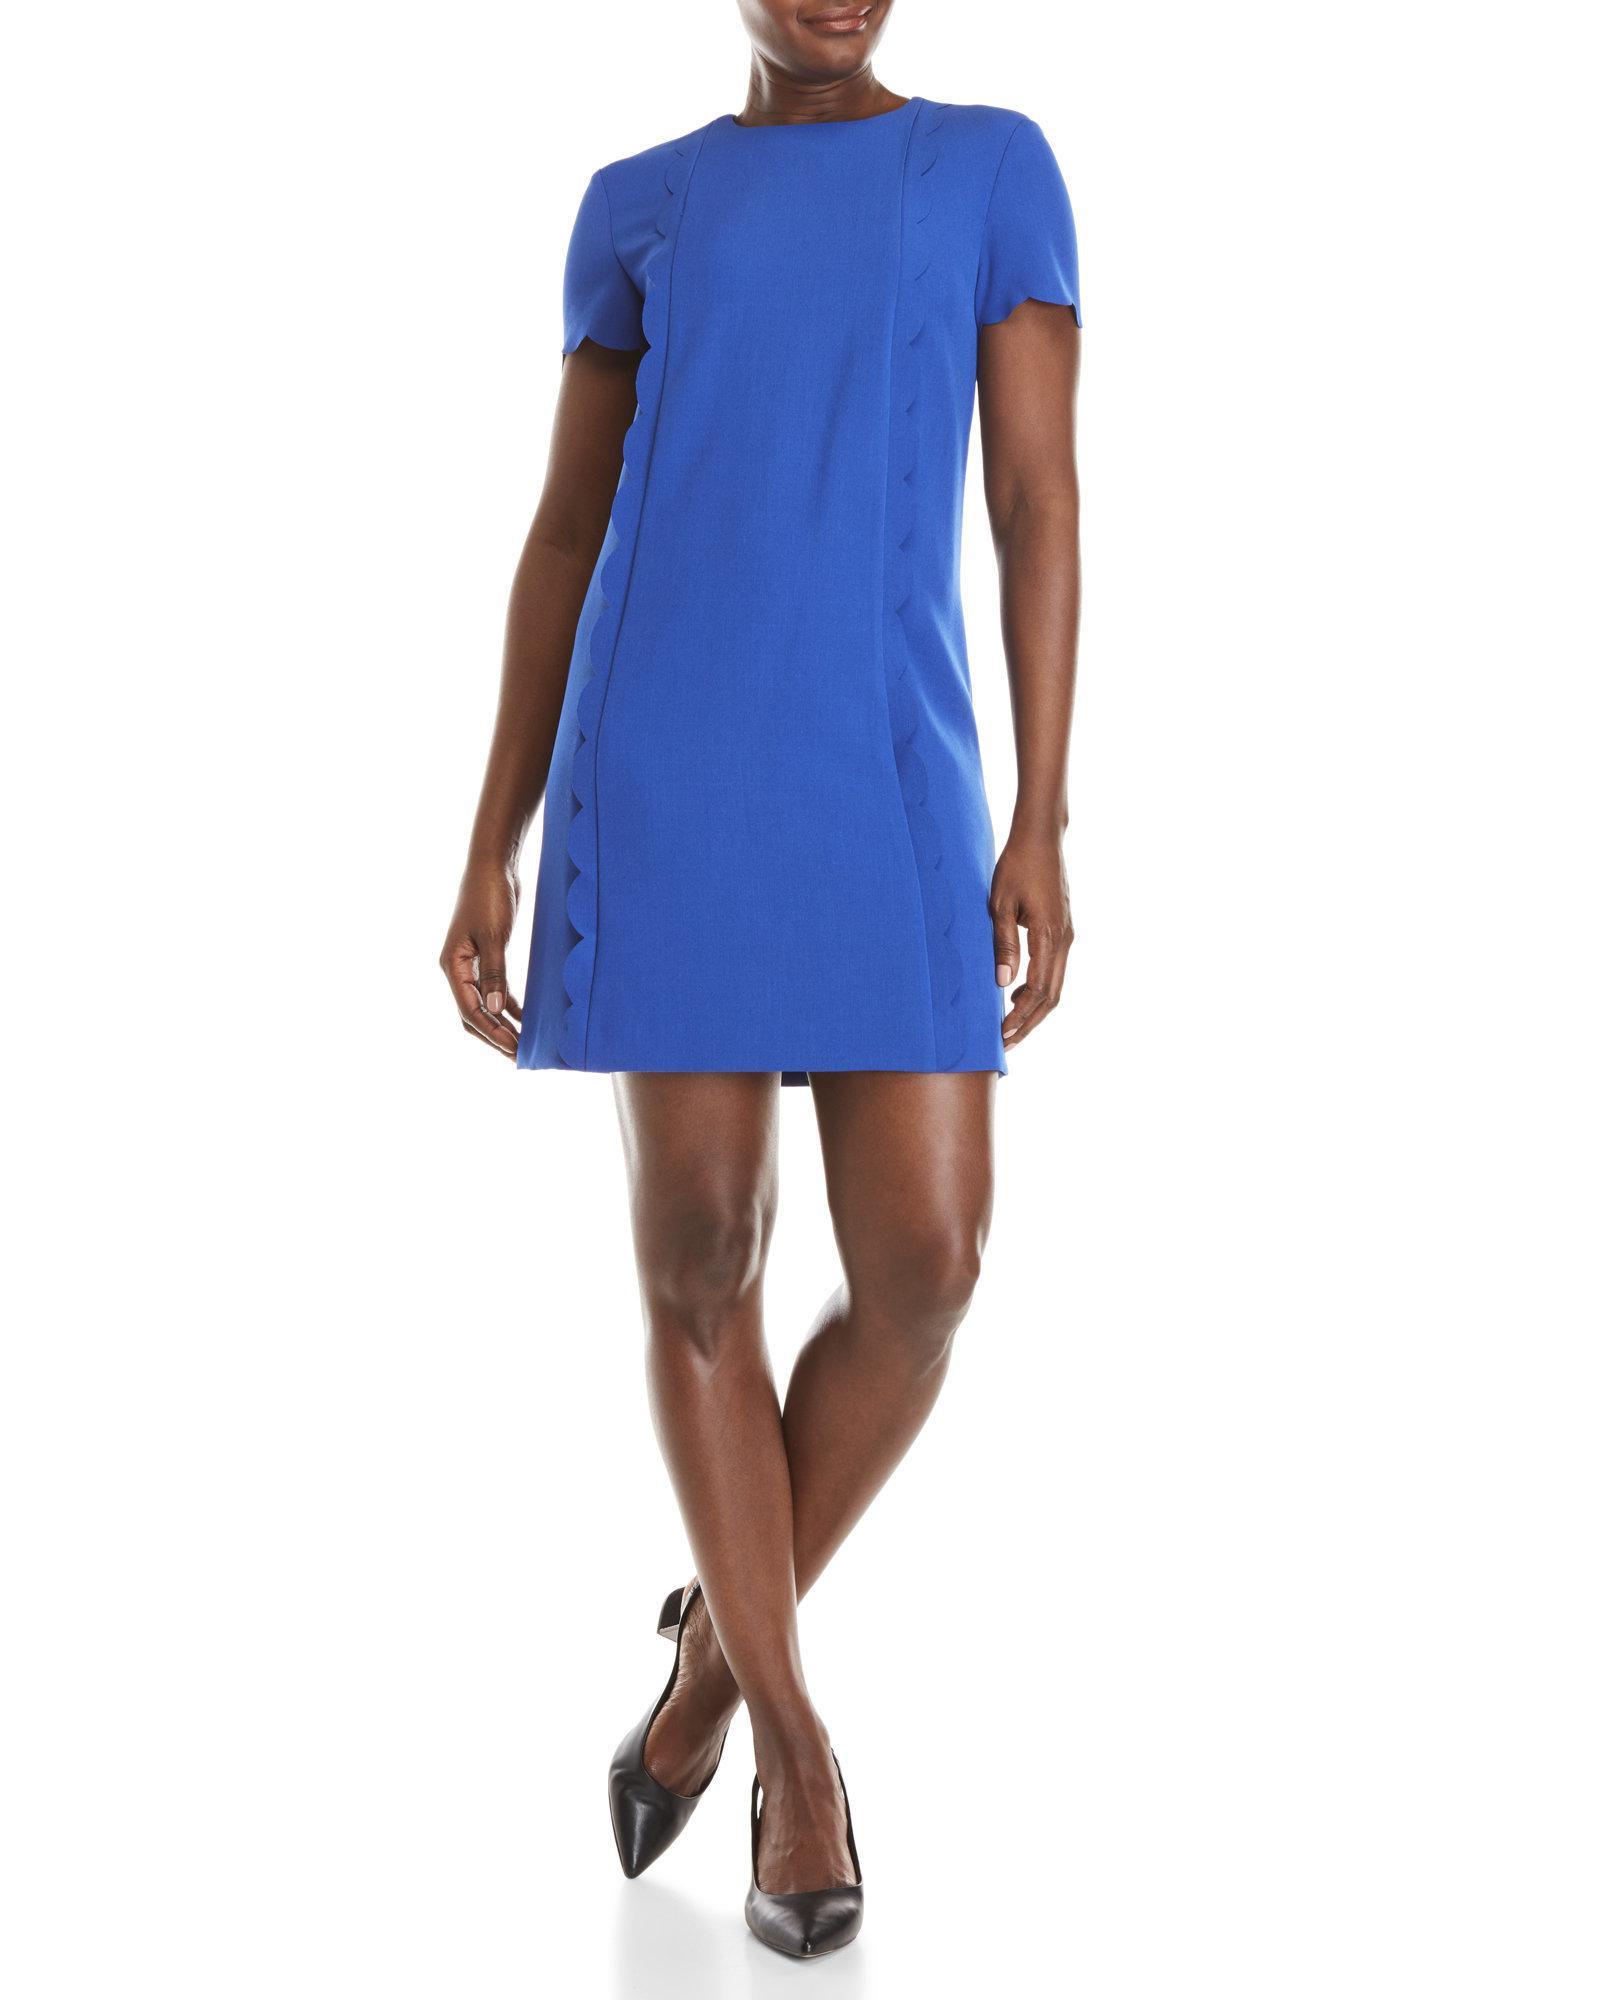 fb7368ce313ad Tahari Short Sleeve Scalloped Shift Dress in Blue - Lyst